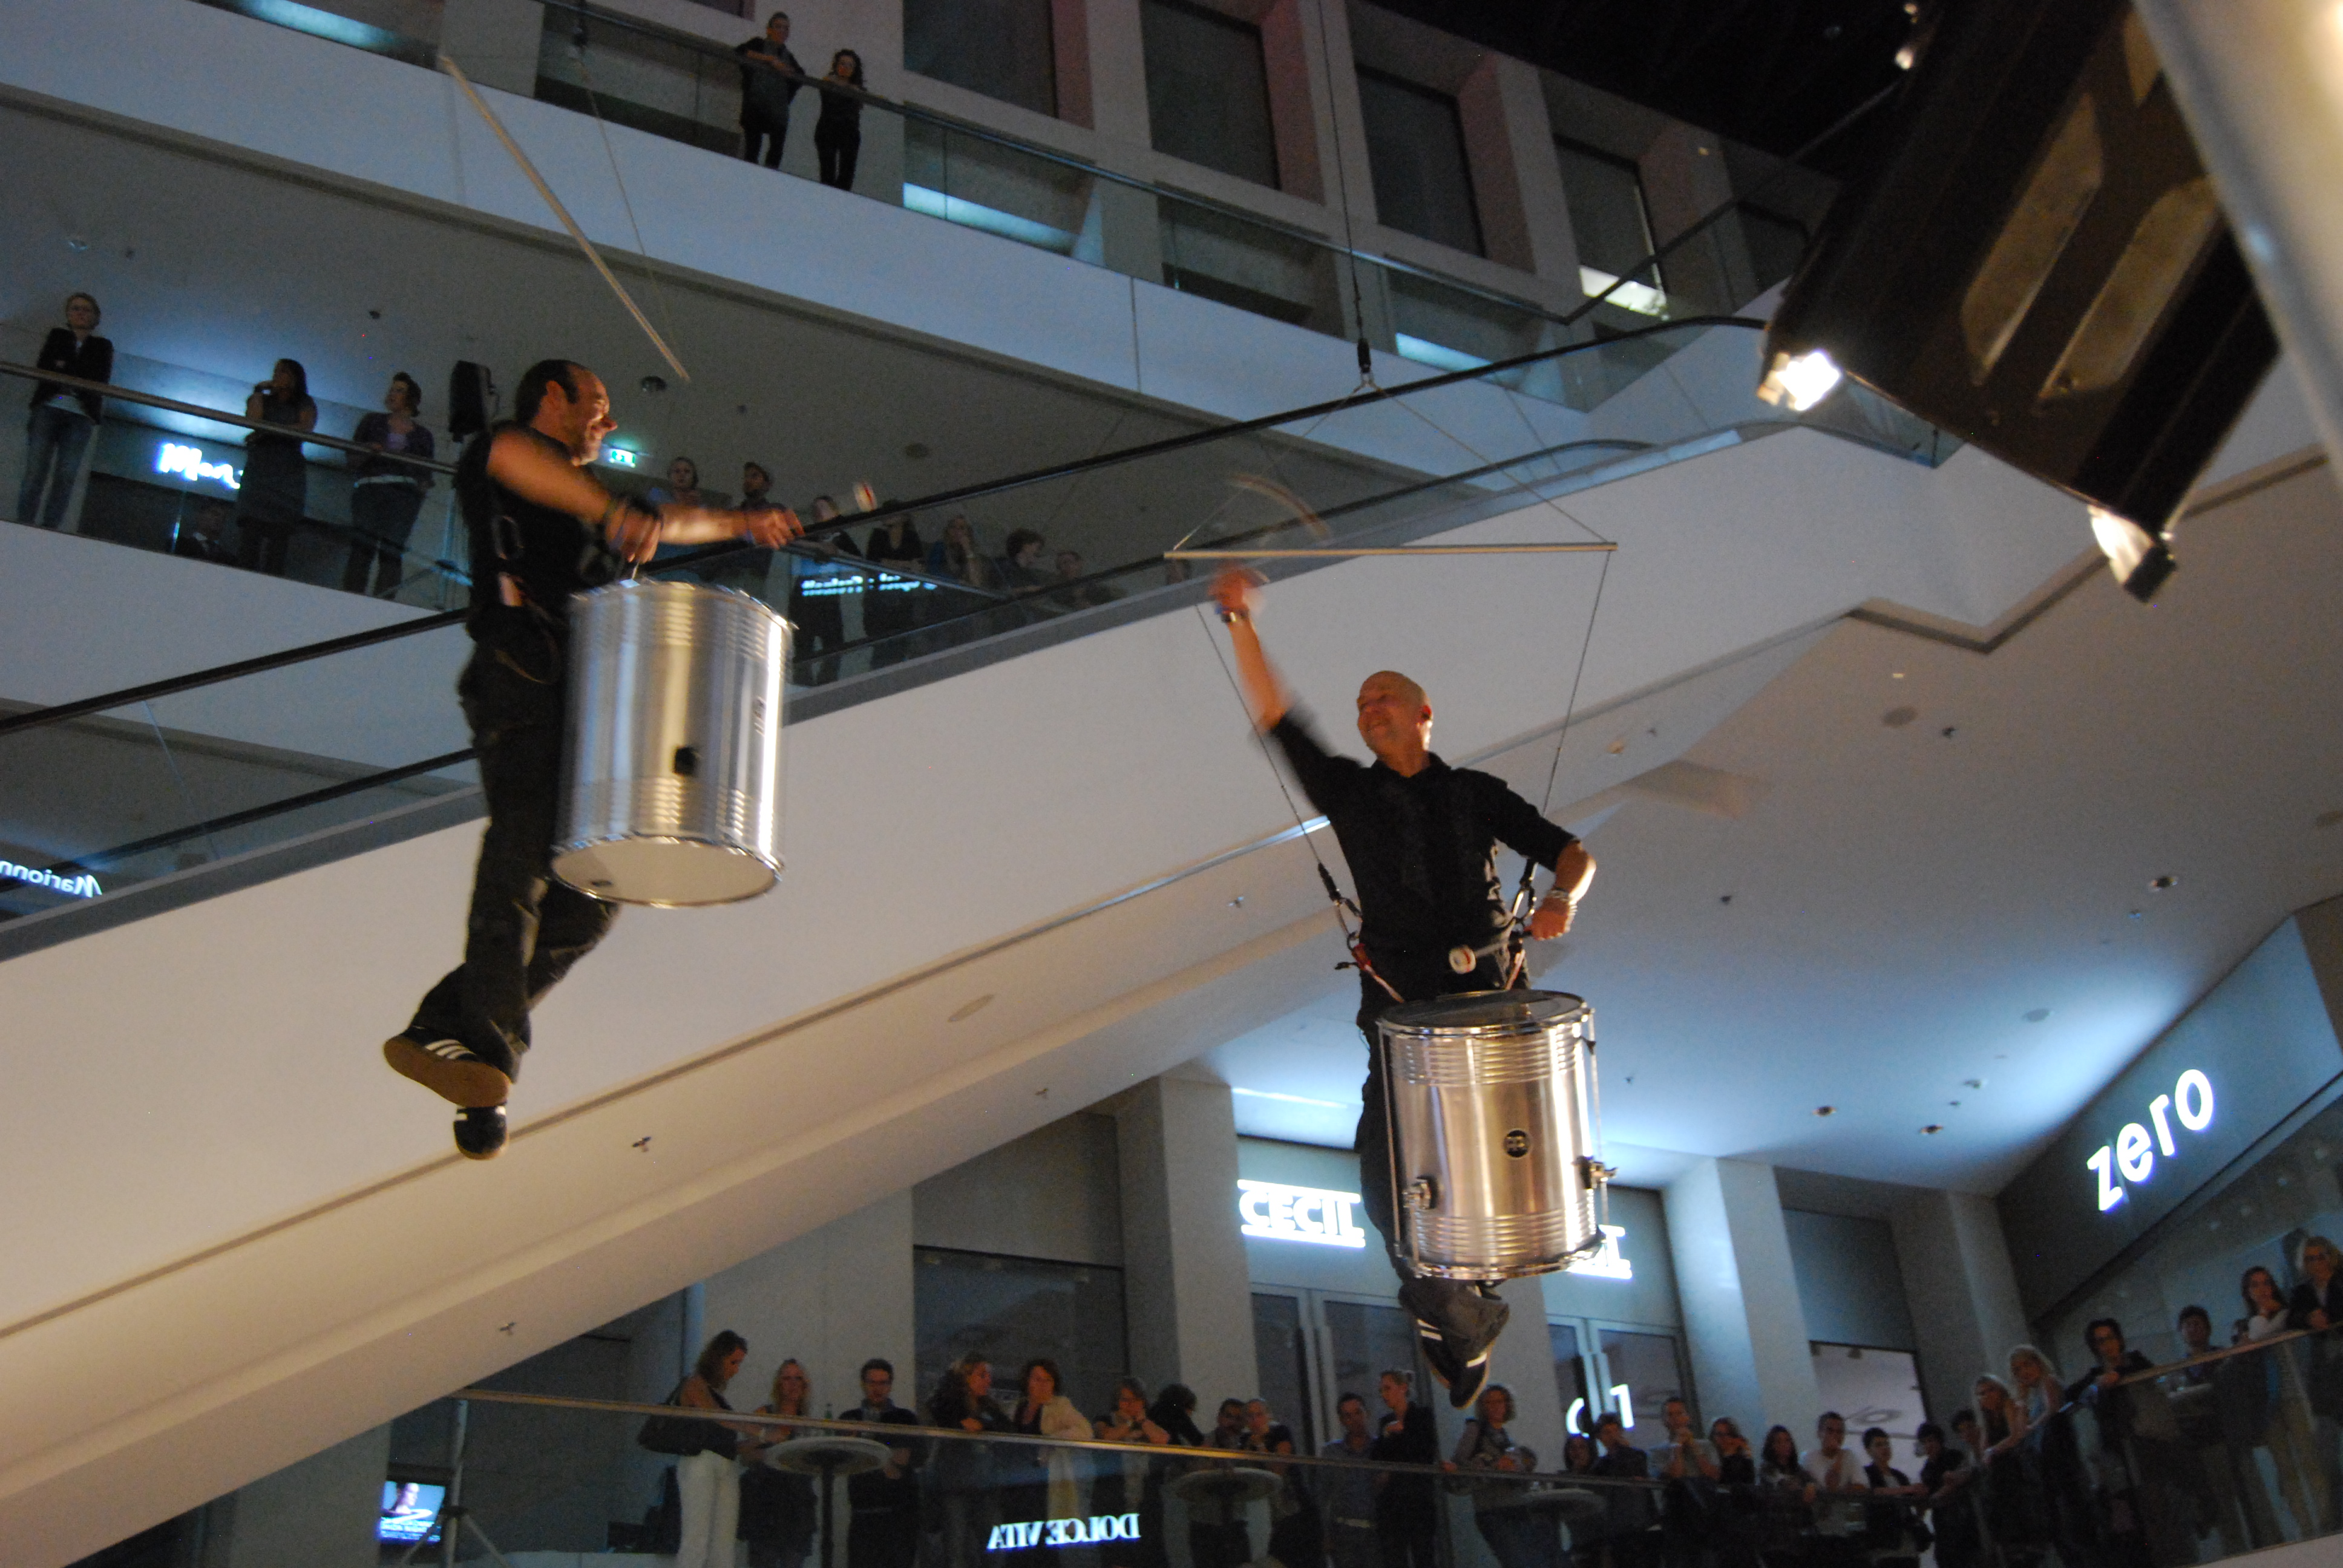 drummers in the air